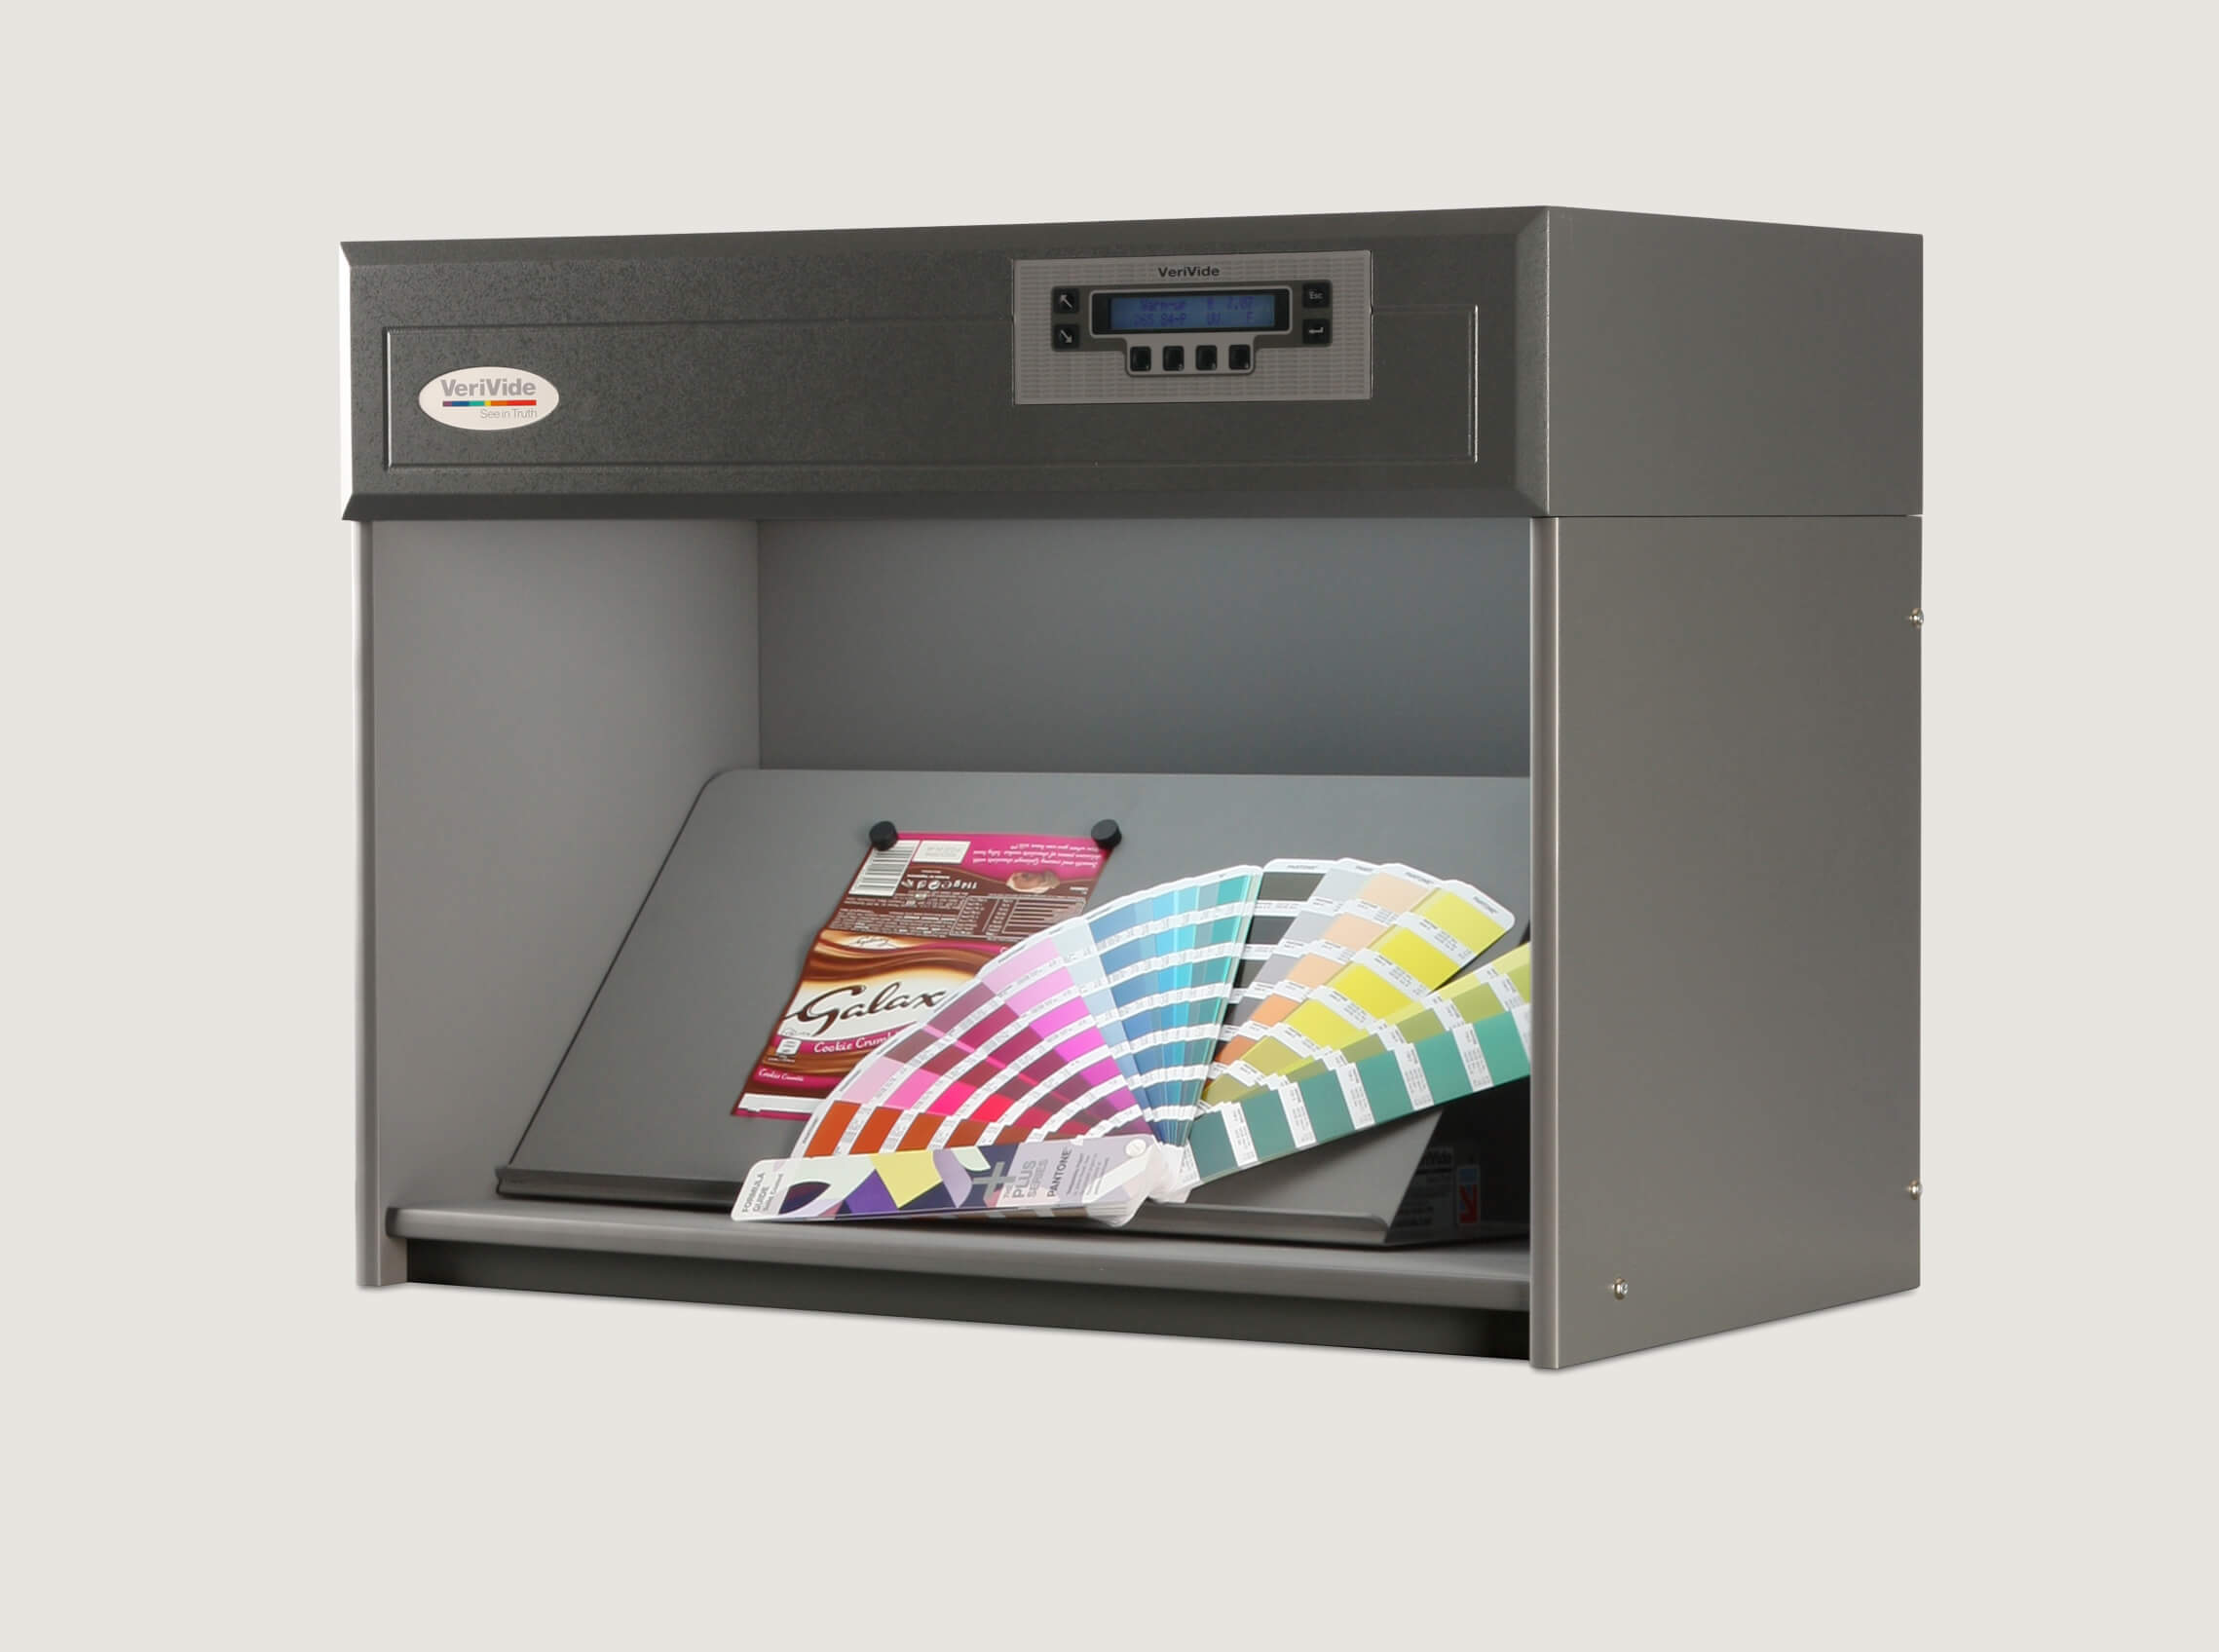 VeriVide's Colour Assessment Cabinets provide standardised viewing conditions for colour consistency.